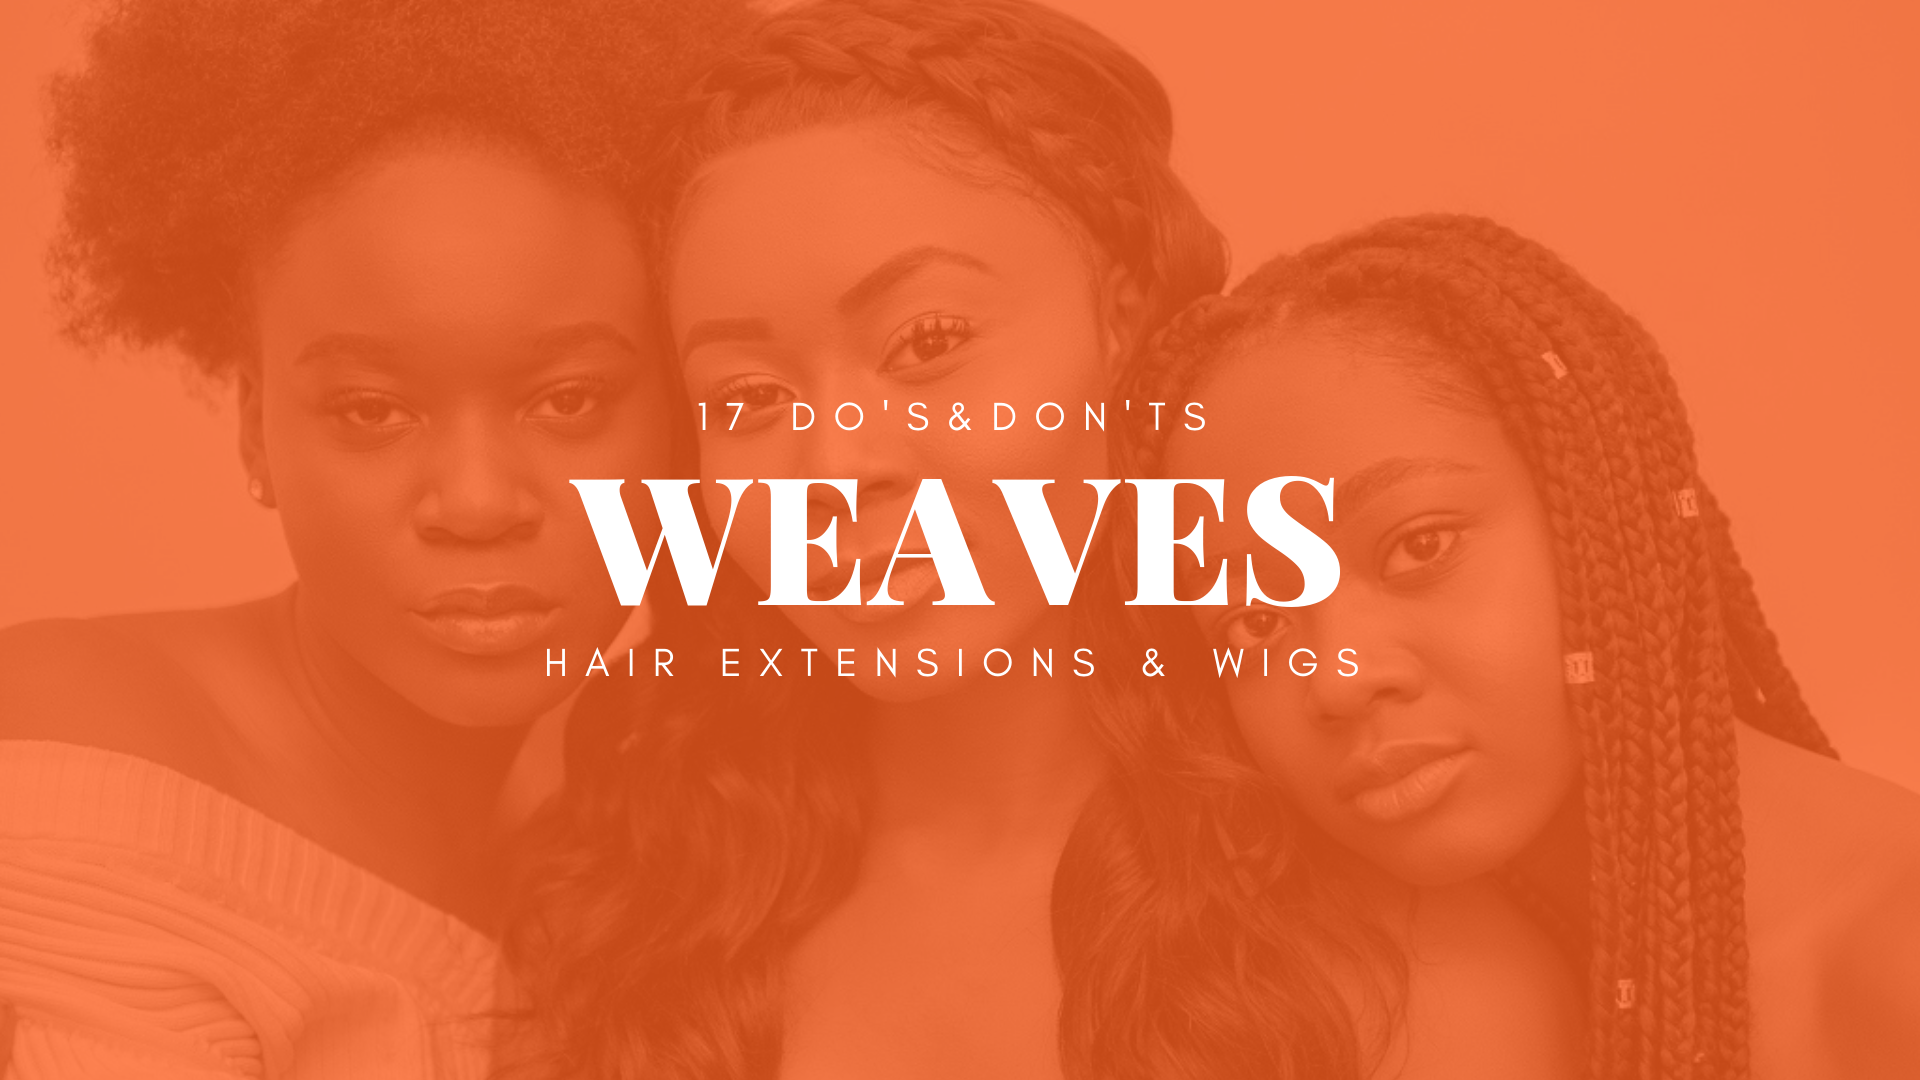 Poster: Weaves, Hair Extensions and wigs - seventeen do's and don'ts